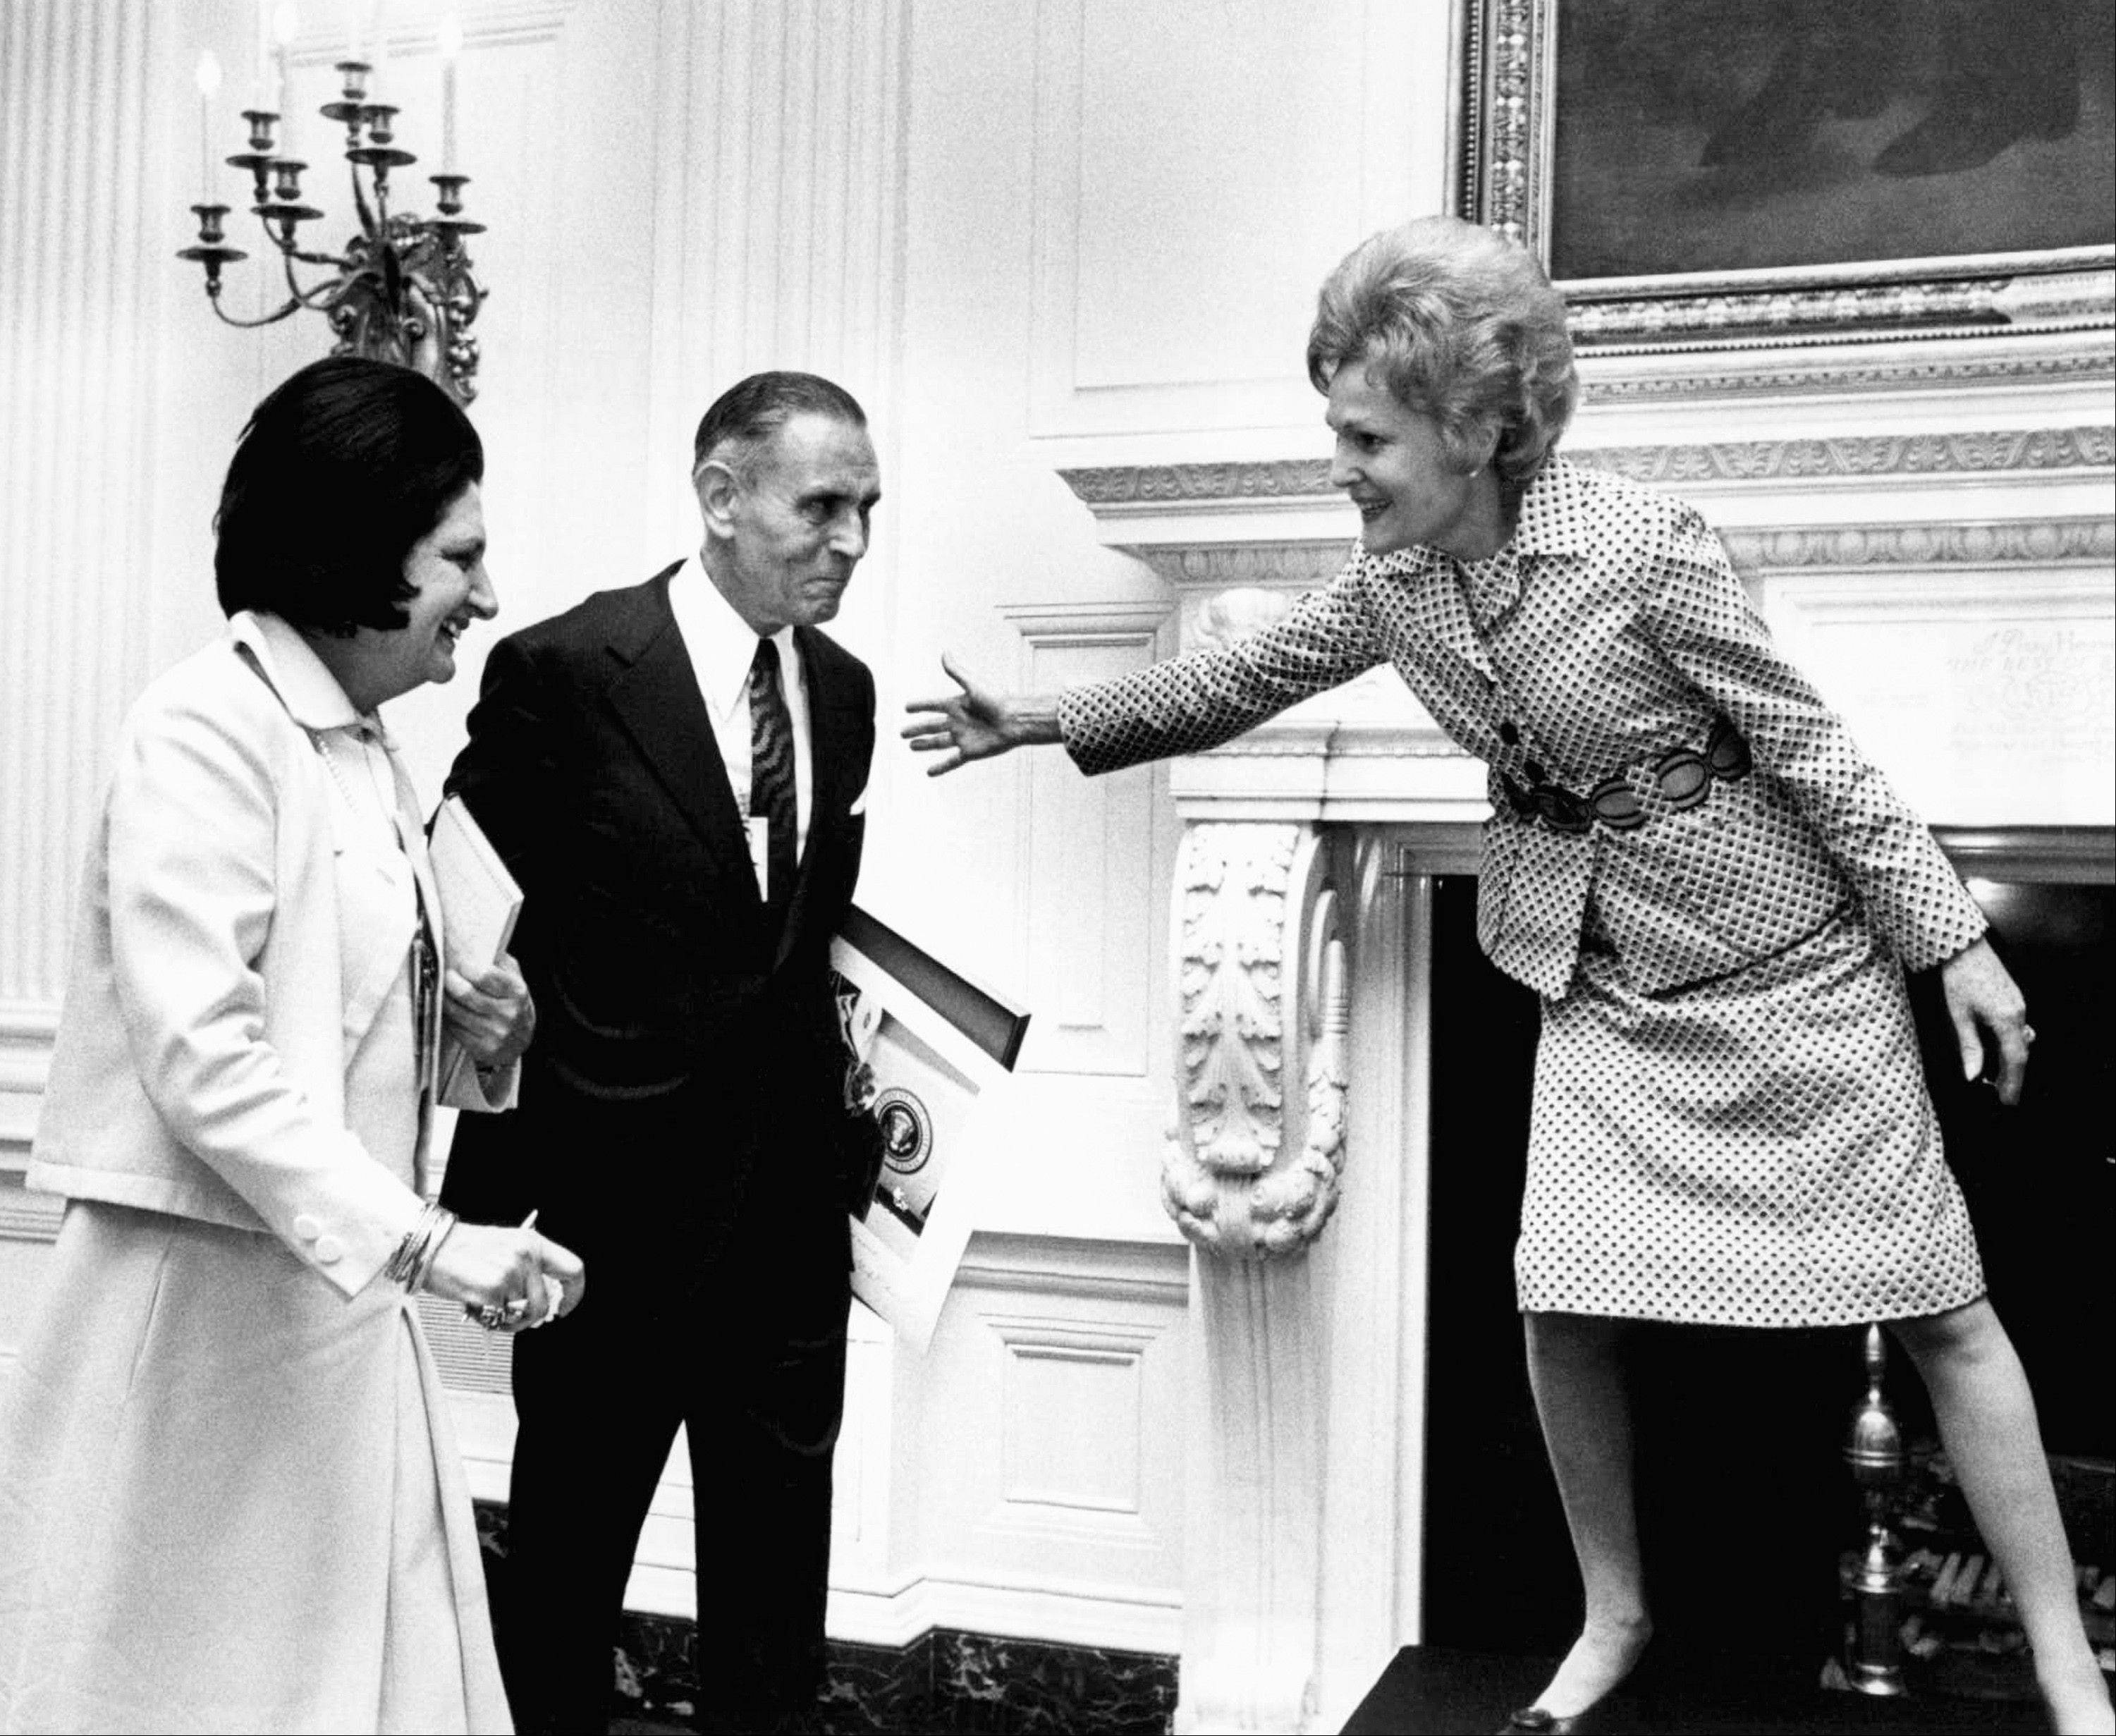 Associated PressIn this Oct. 1, 1971, file photo first lady Pat Nixon motions to Helen Thomas, left, and Douglas B. Cornell to join her on a platform at a White House reception. Thomas, the irrepressible White House correspondent who scooped so many, was herself scooped by the first lady who announced their engagement near the end of the impromptu reception. Thomas, who used her seat in the front row of history to grill nine presidents and was not shy about sharing her opinions, died Saturday, July 20. She was 92.